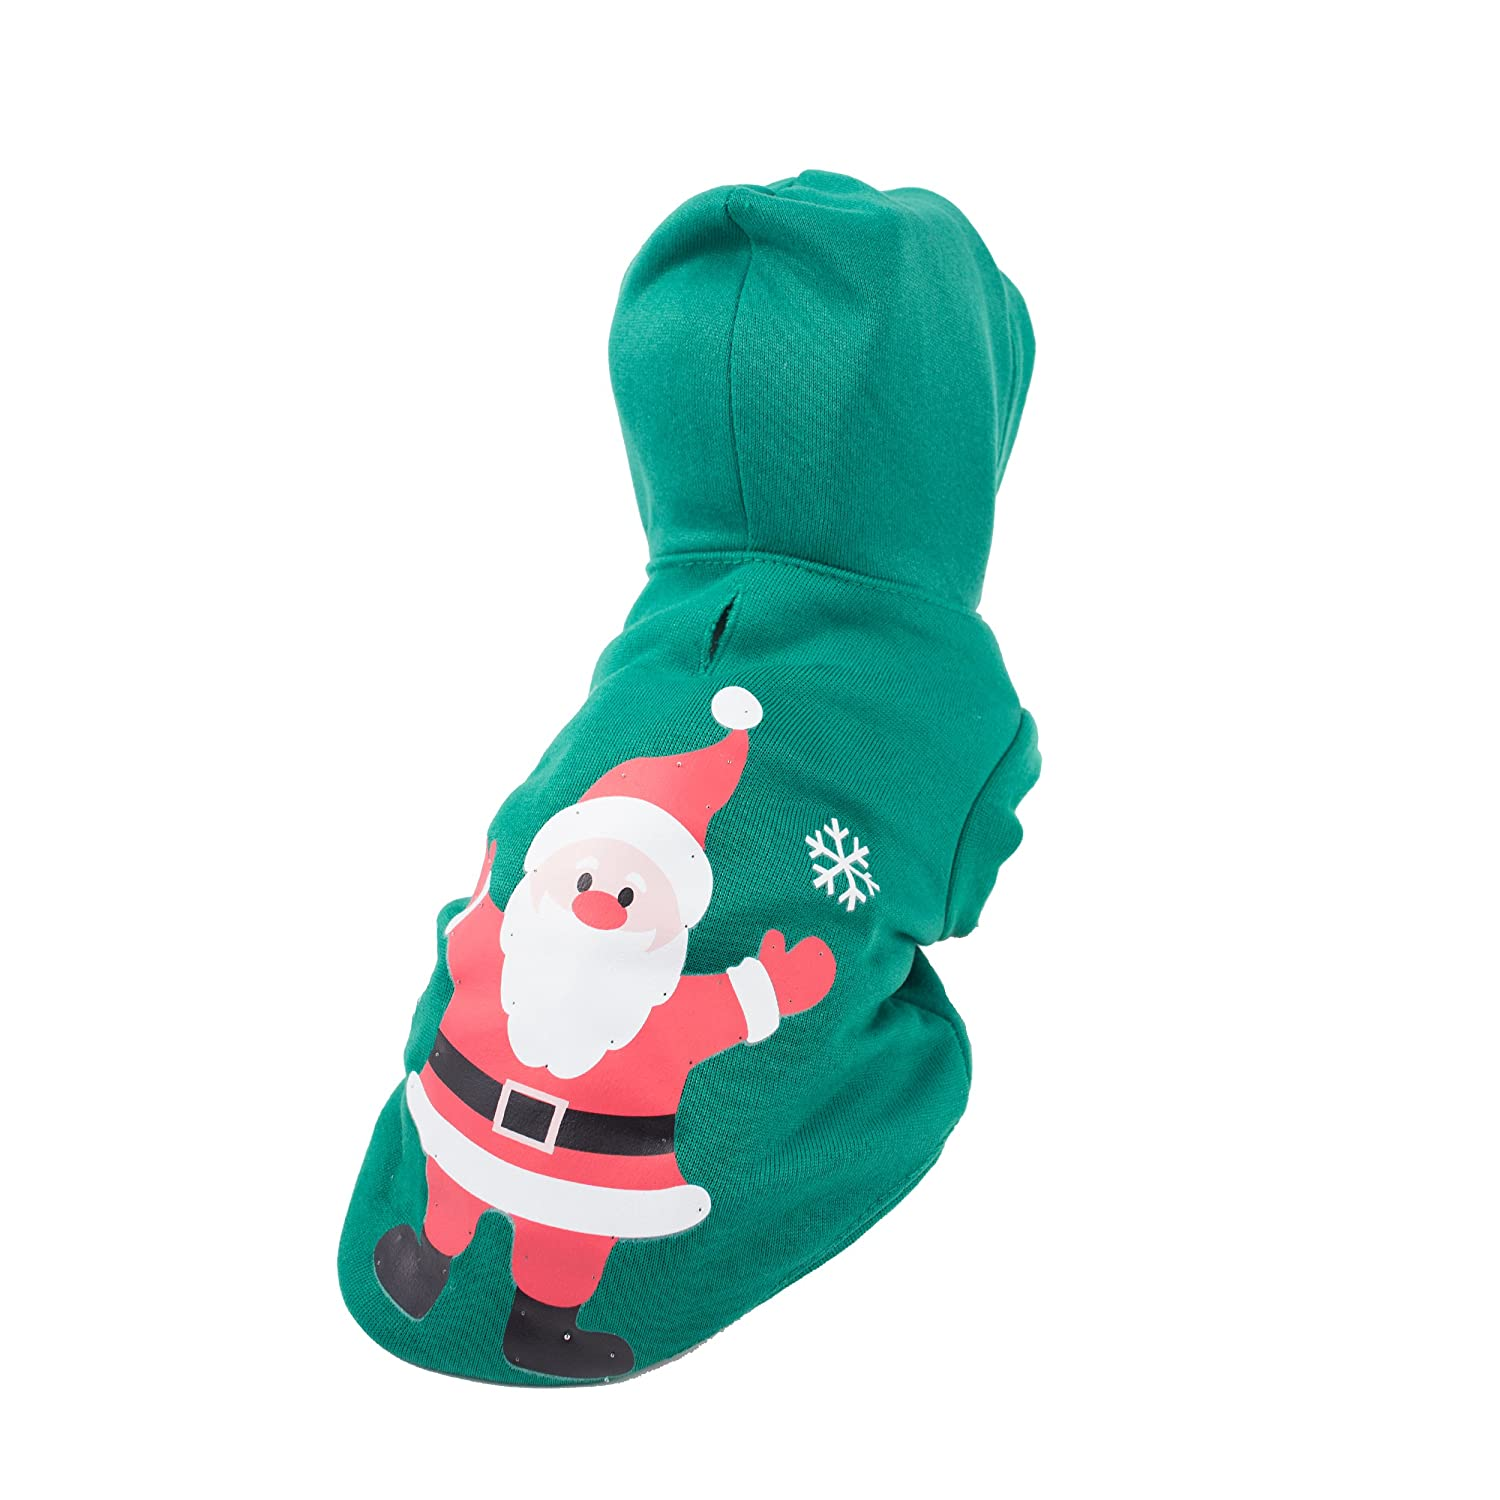 Green X-Small PET LIFE Hands Up Santa LED Lighting Fashion Designer Holiday Christmas Pet Dog Costume Sweater Hoodie w//Included Batteries